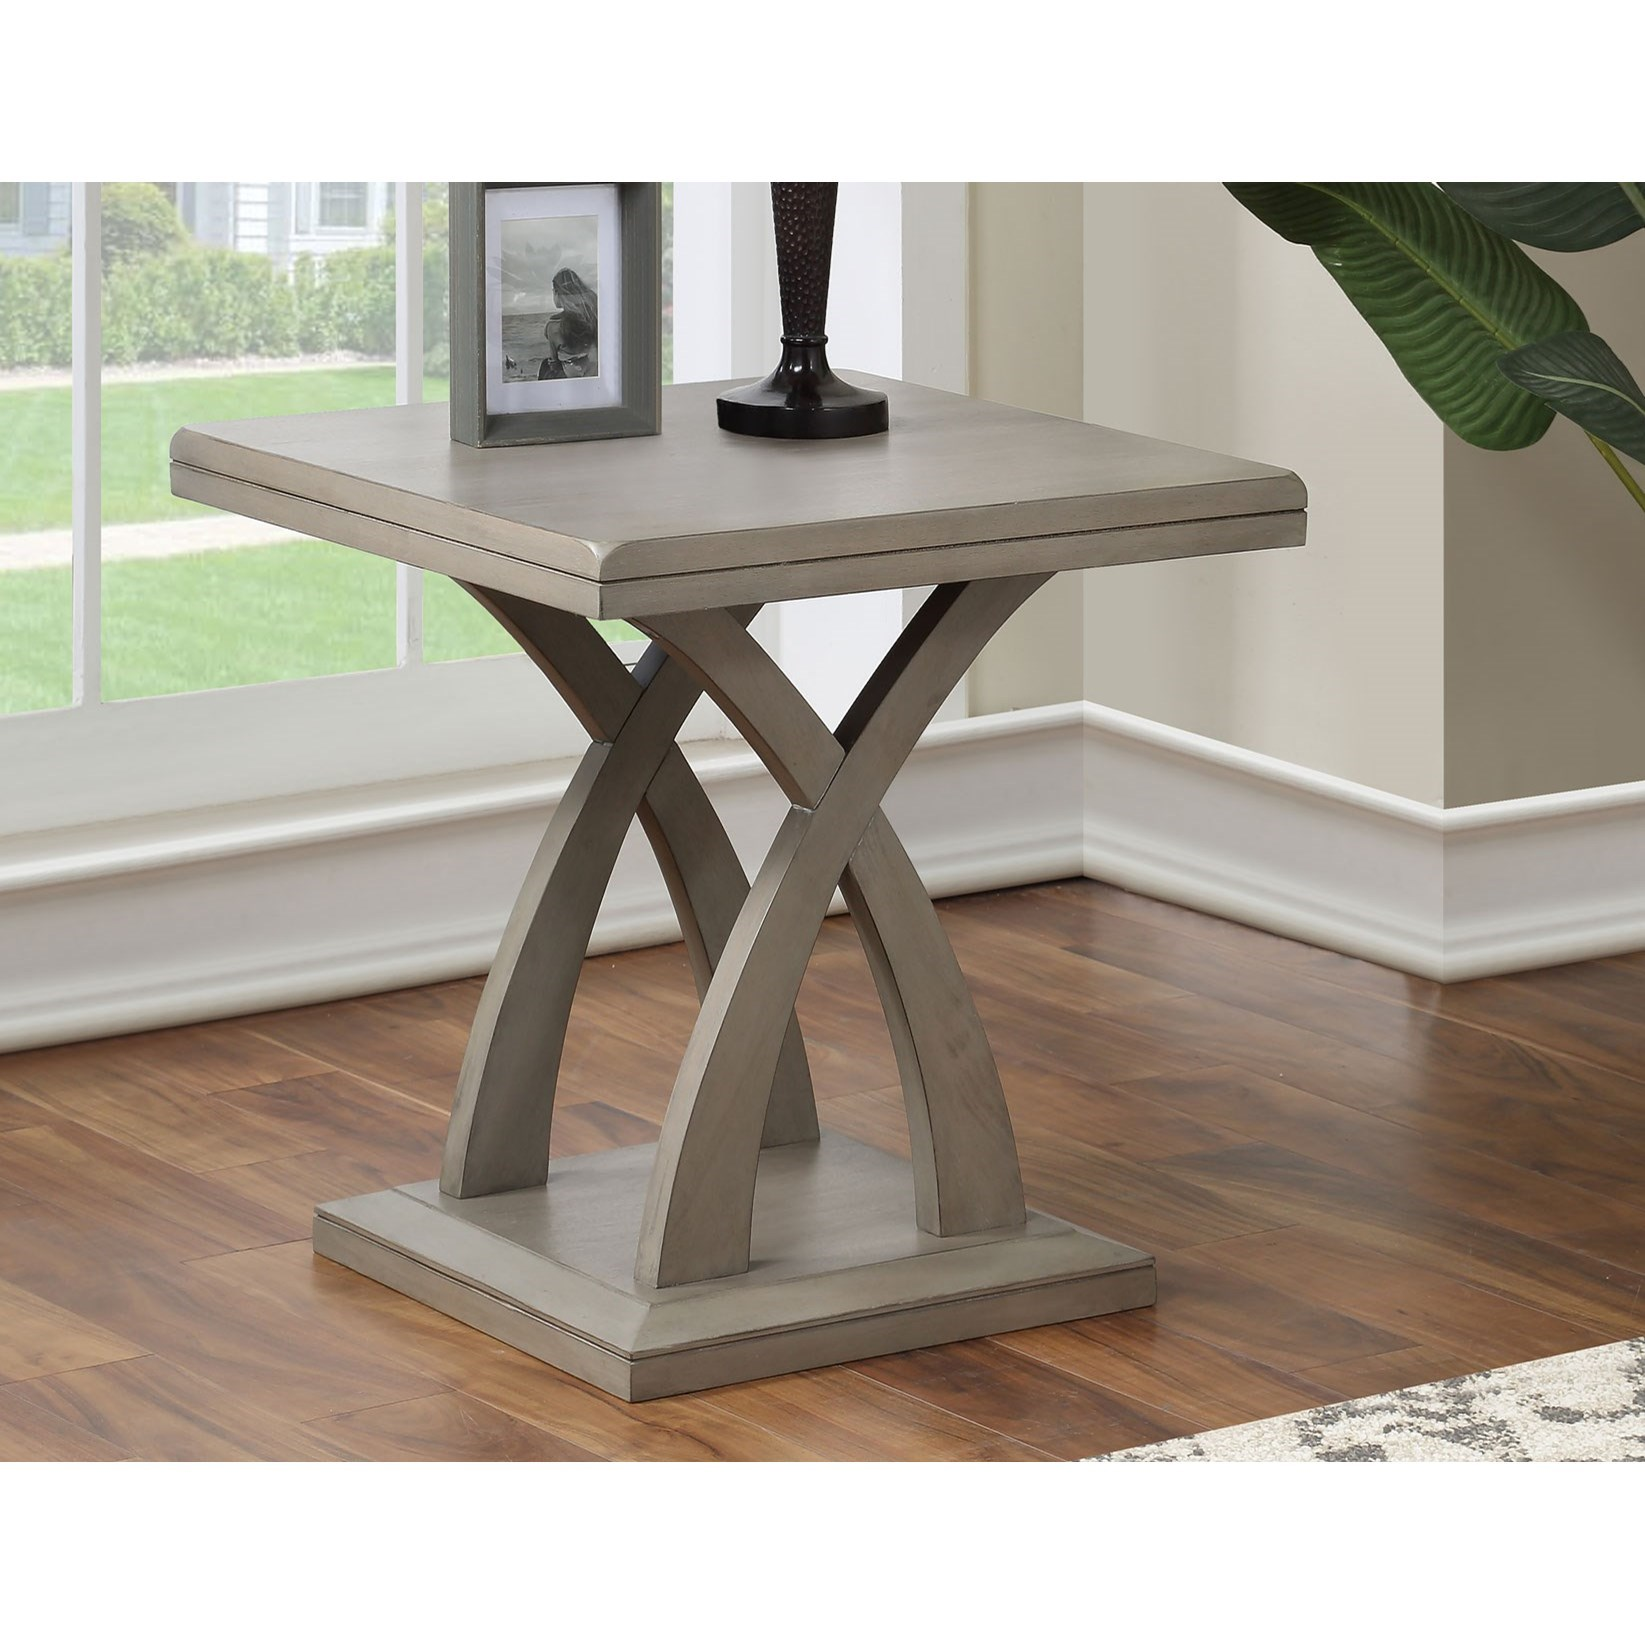 Jocelyn End Table by Steve Silver at Northeast Factory Direct